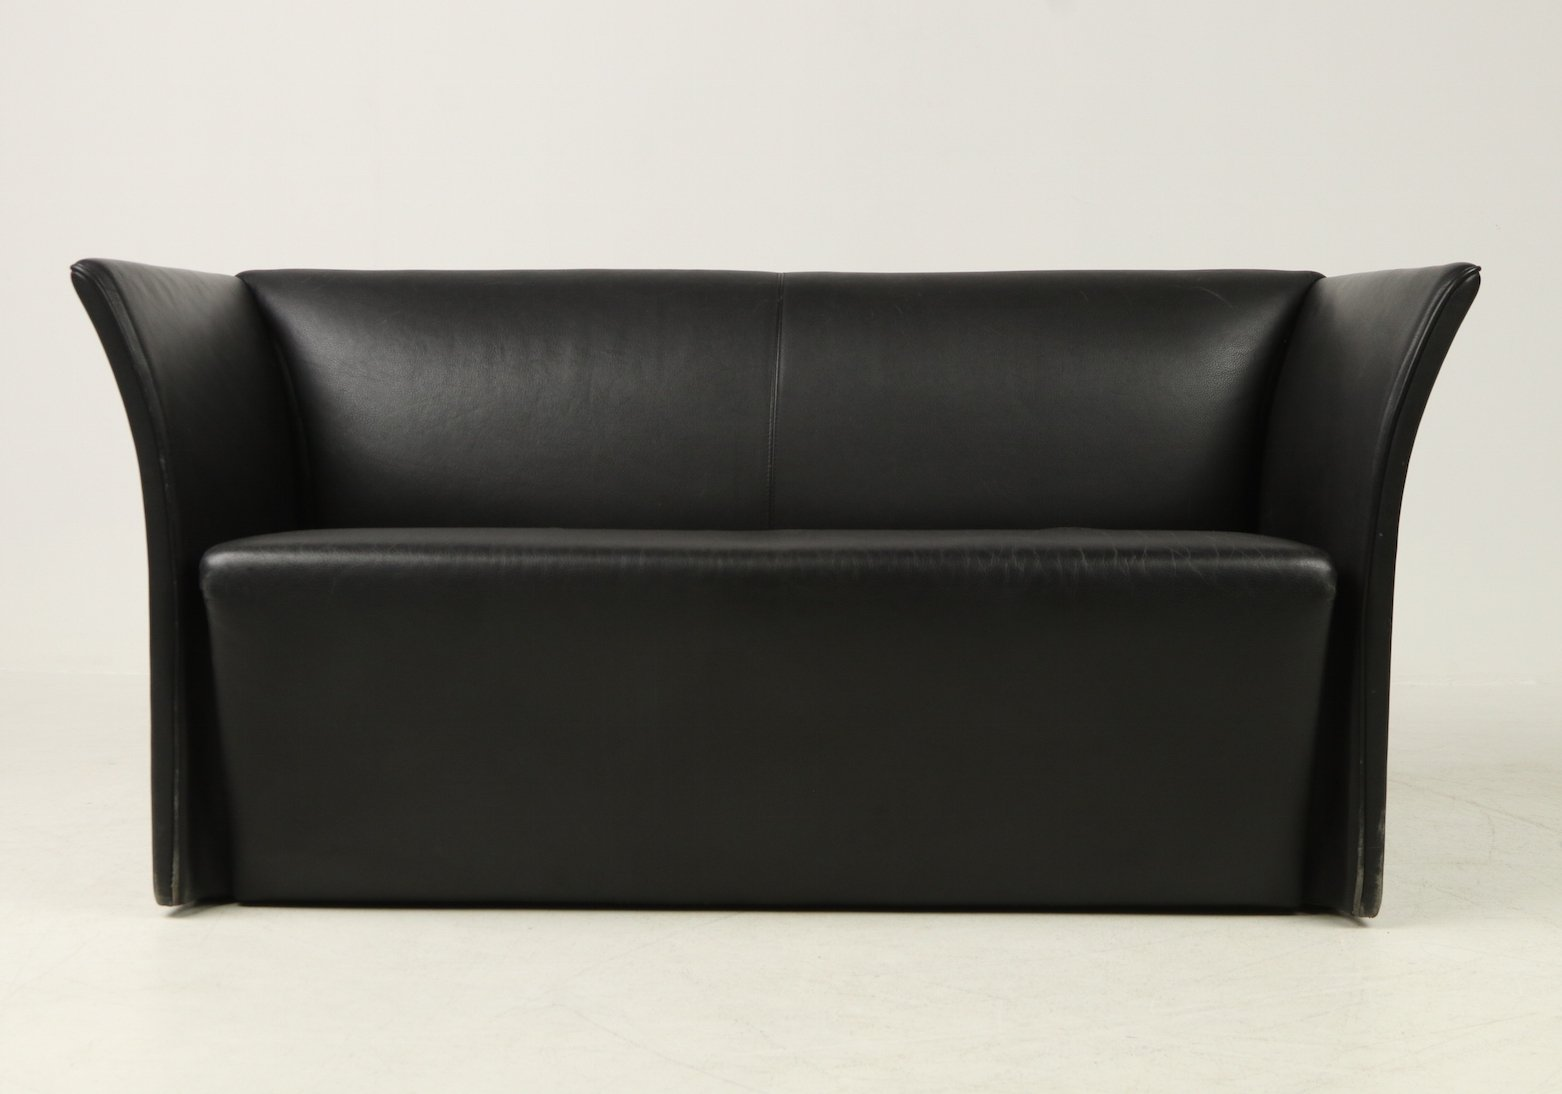 Modern design 2-seater sofa in black leather